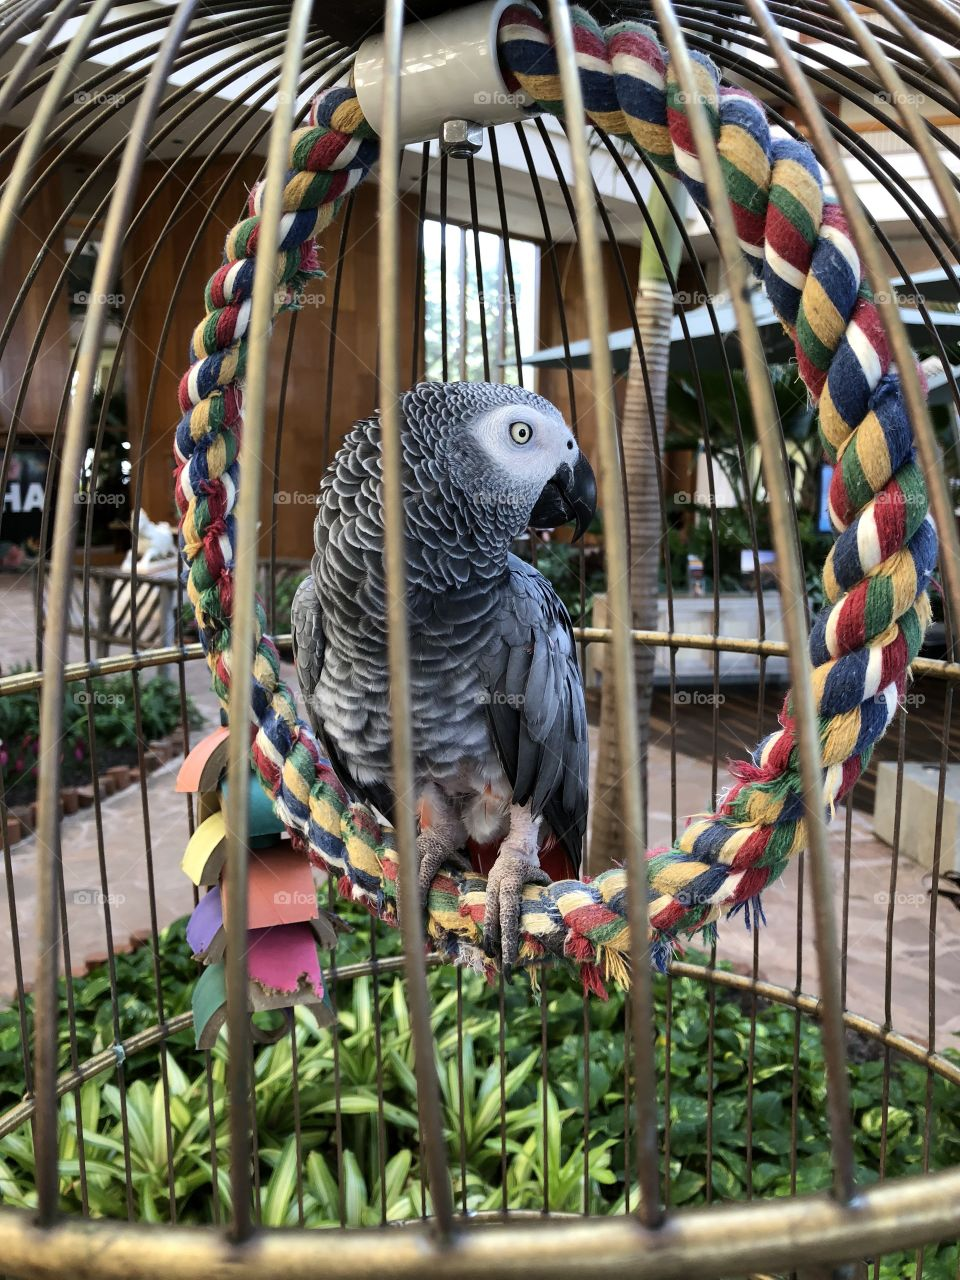 Parrot in the cage.